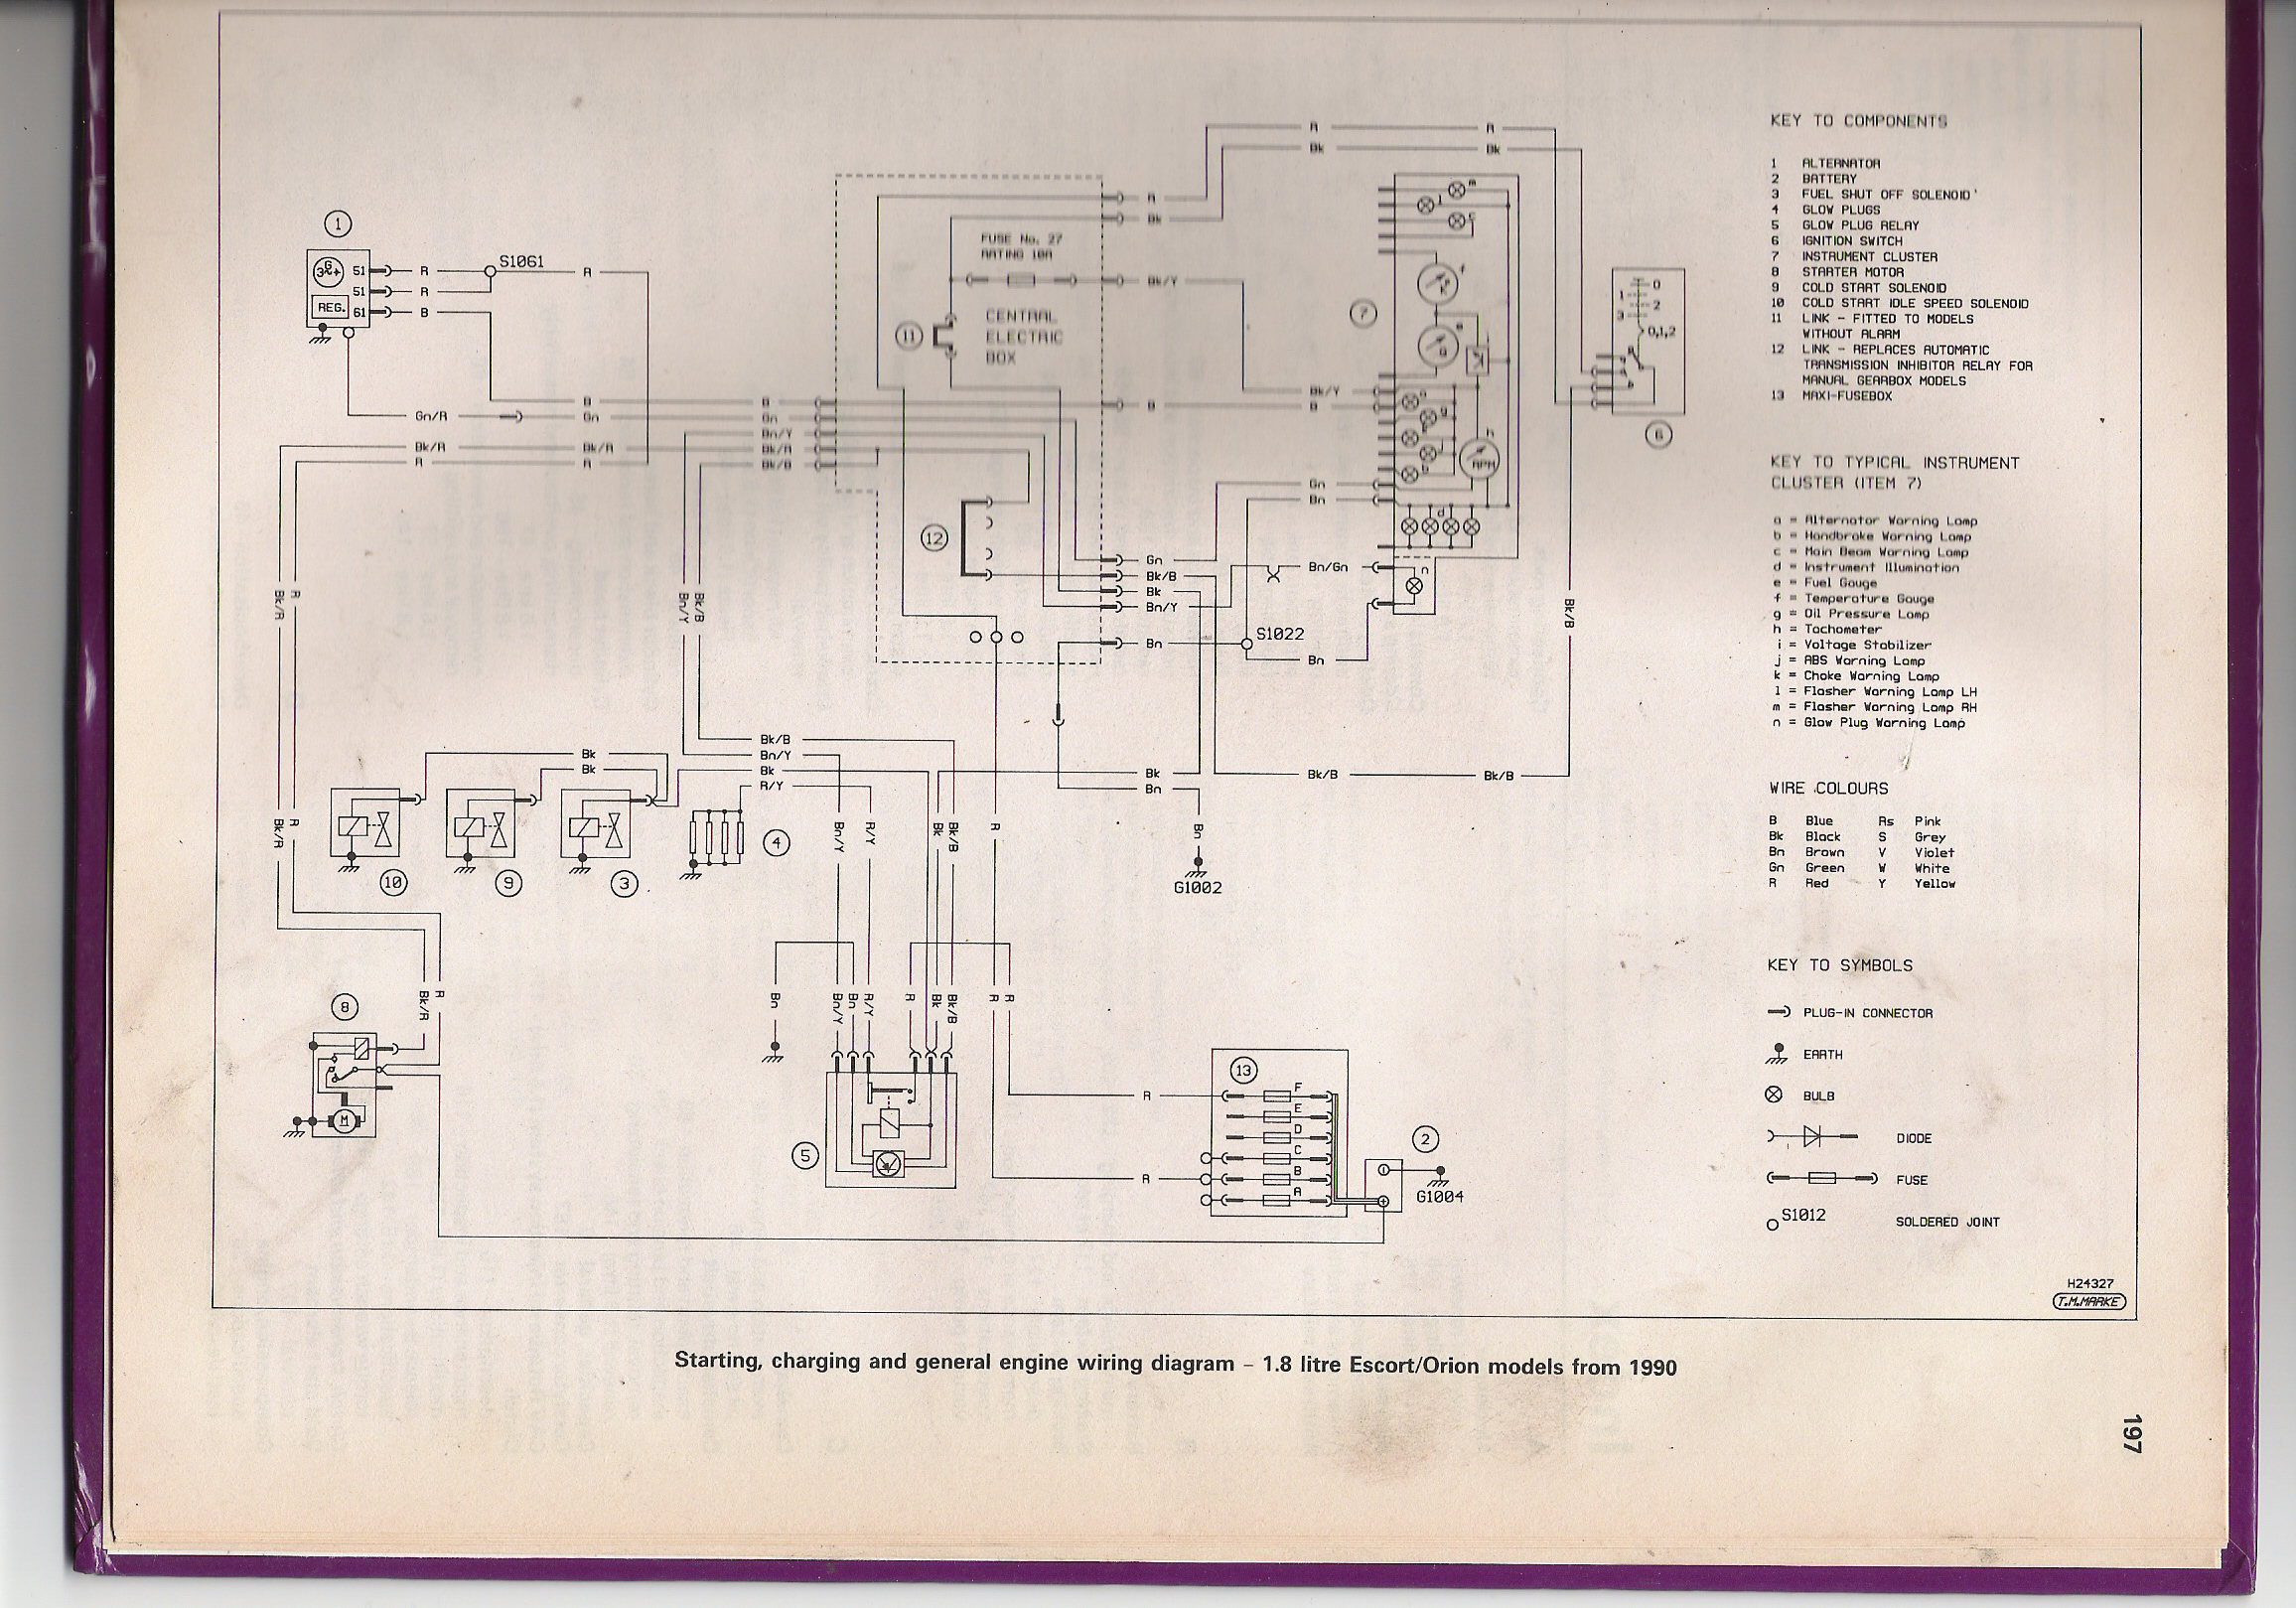 fordwiringdl mk4 wiring diagram wiring diagram symbols \u2022 wiring diagrams j ford mondeo mk4 fuse box layout at panicattacktreatment.co